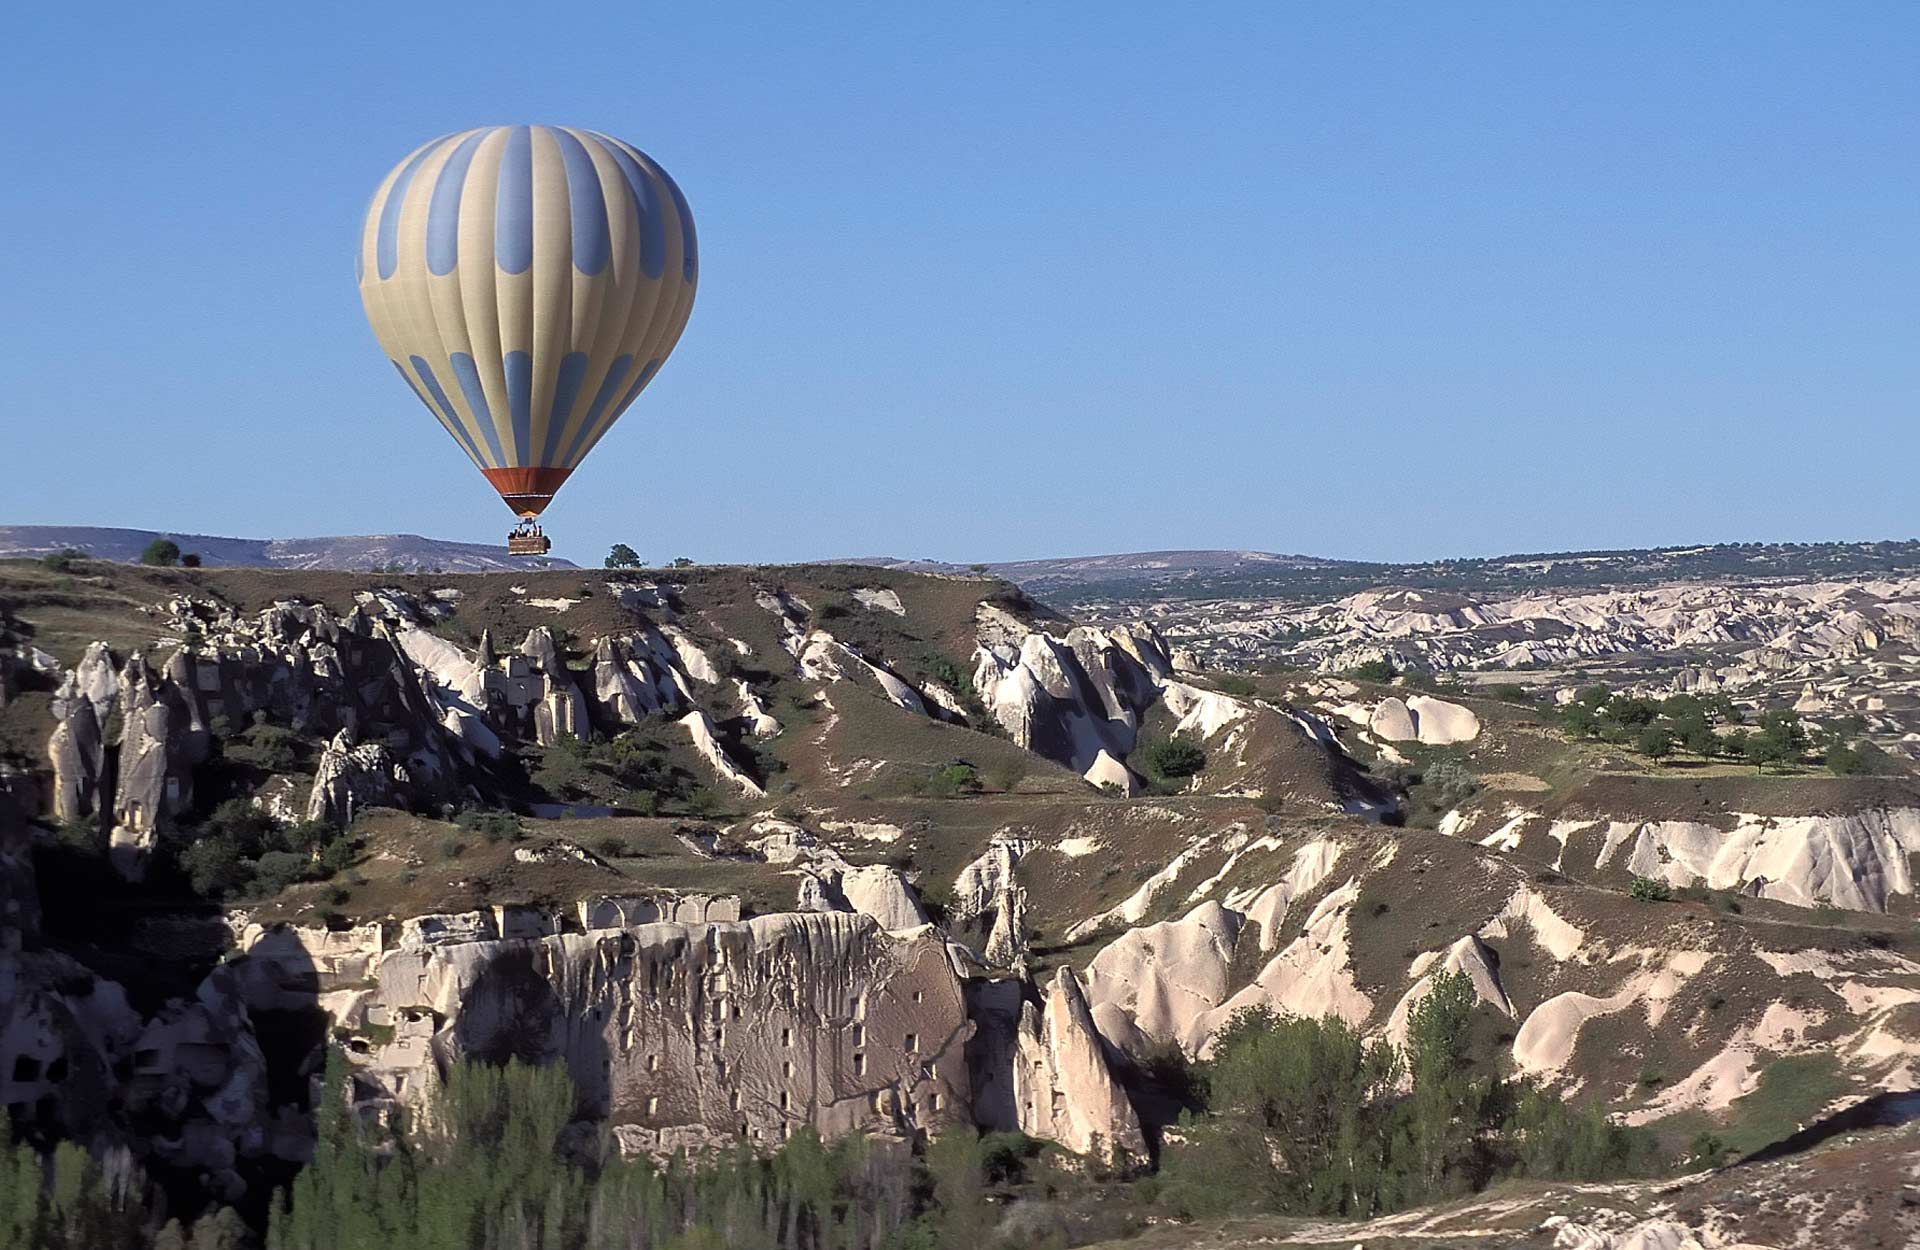 Aerial view of a hot air balloon flying over the Dovecote Valley, as seen from a hot air balloon, Cappadocia, Nevsehir, Turkey